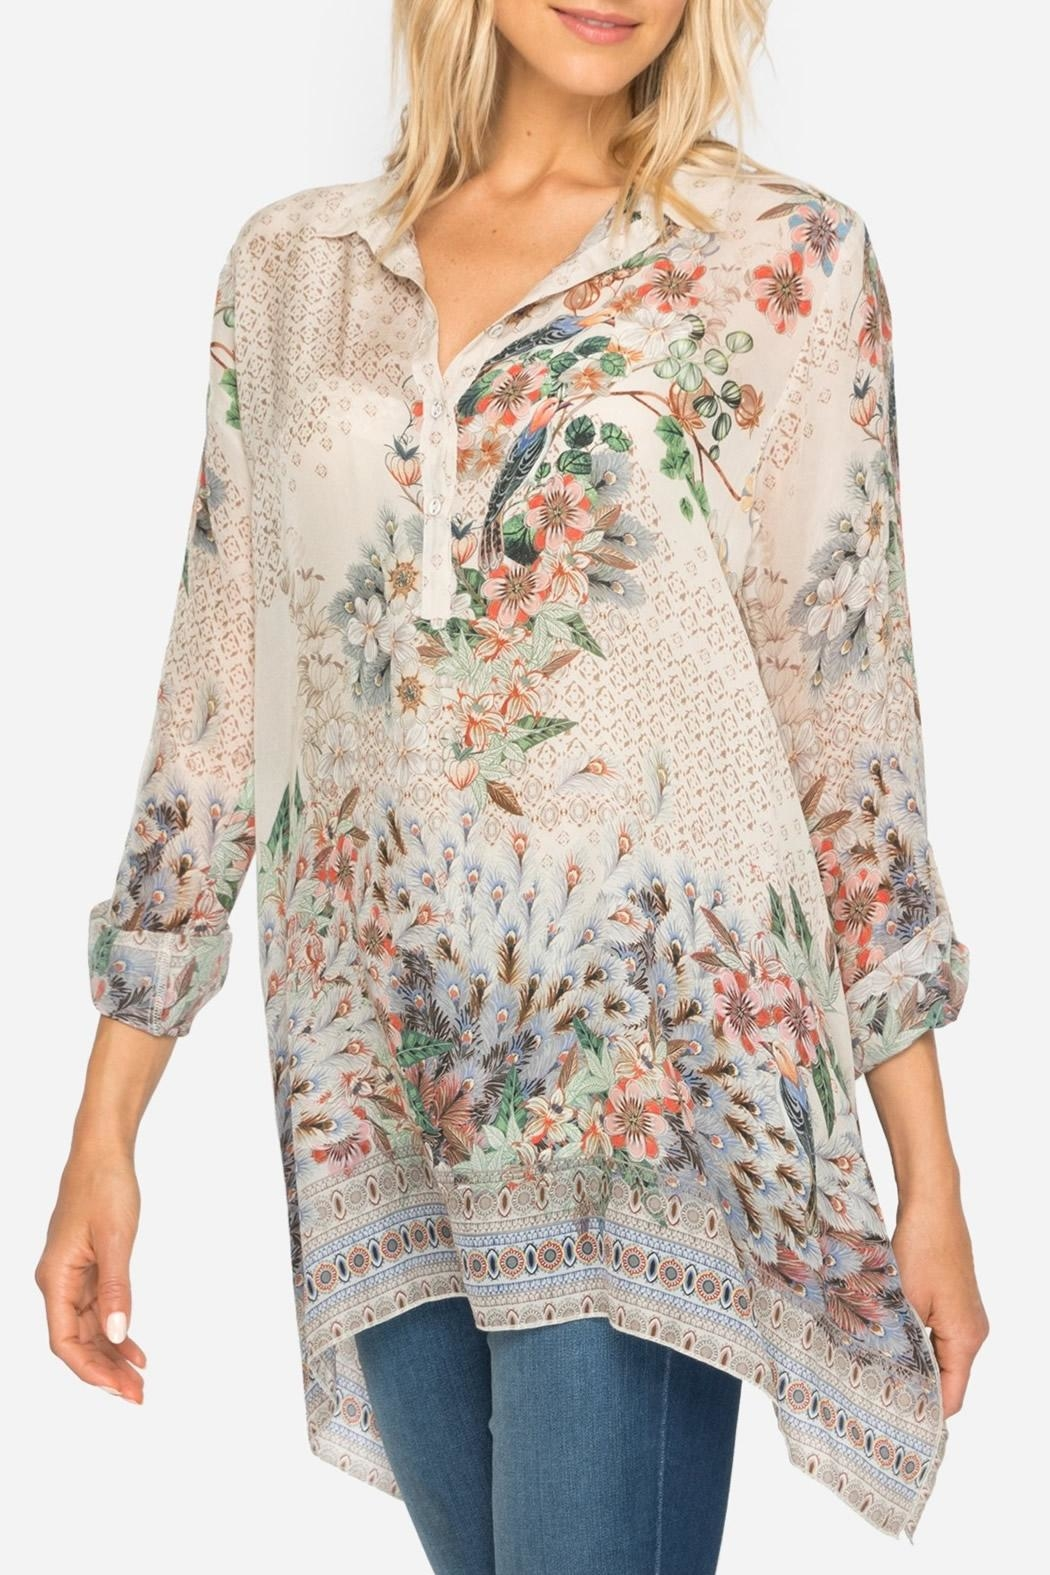 Johnny Was Pacheco Tunic Top - Main Image